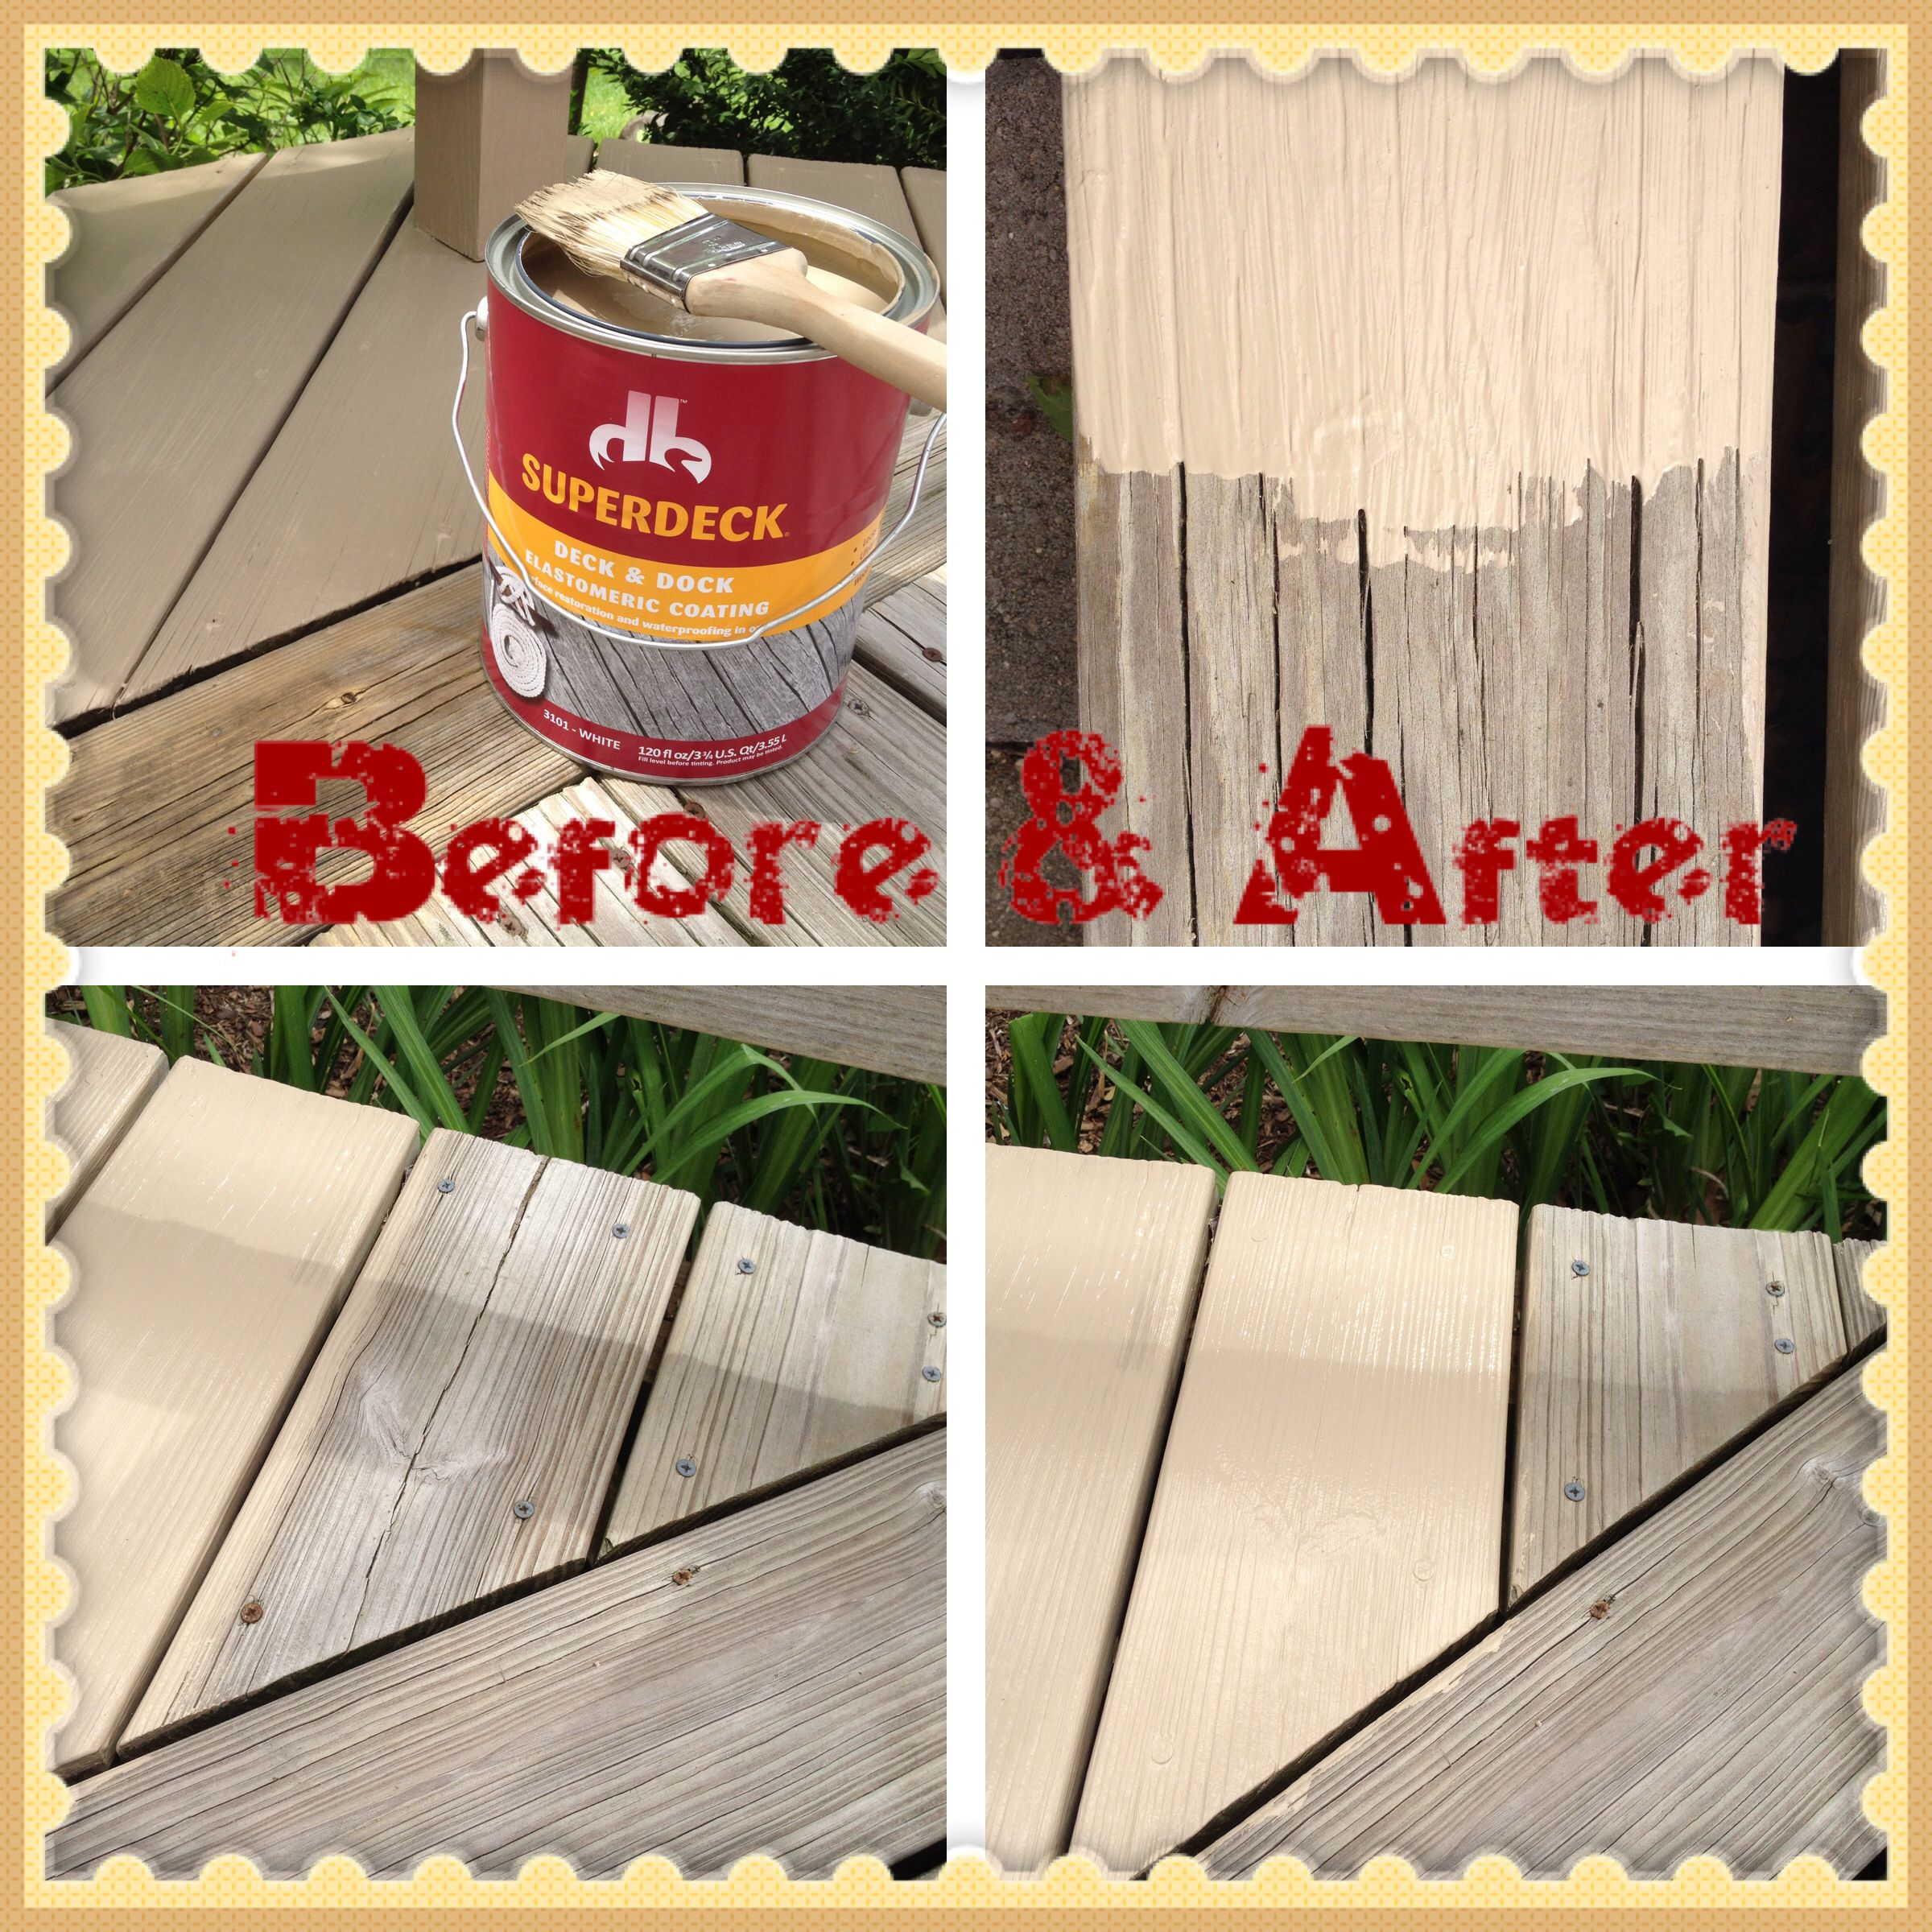 Done Sherwin Williams Superdeck Deck Dock Paint For Severely Weathered Decking I M Doing It Myself This Product Wor Deck Decks And Porches Outdoor Living